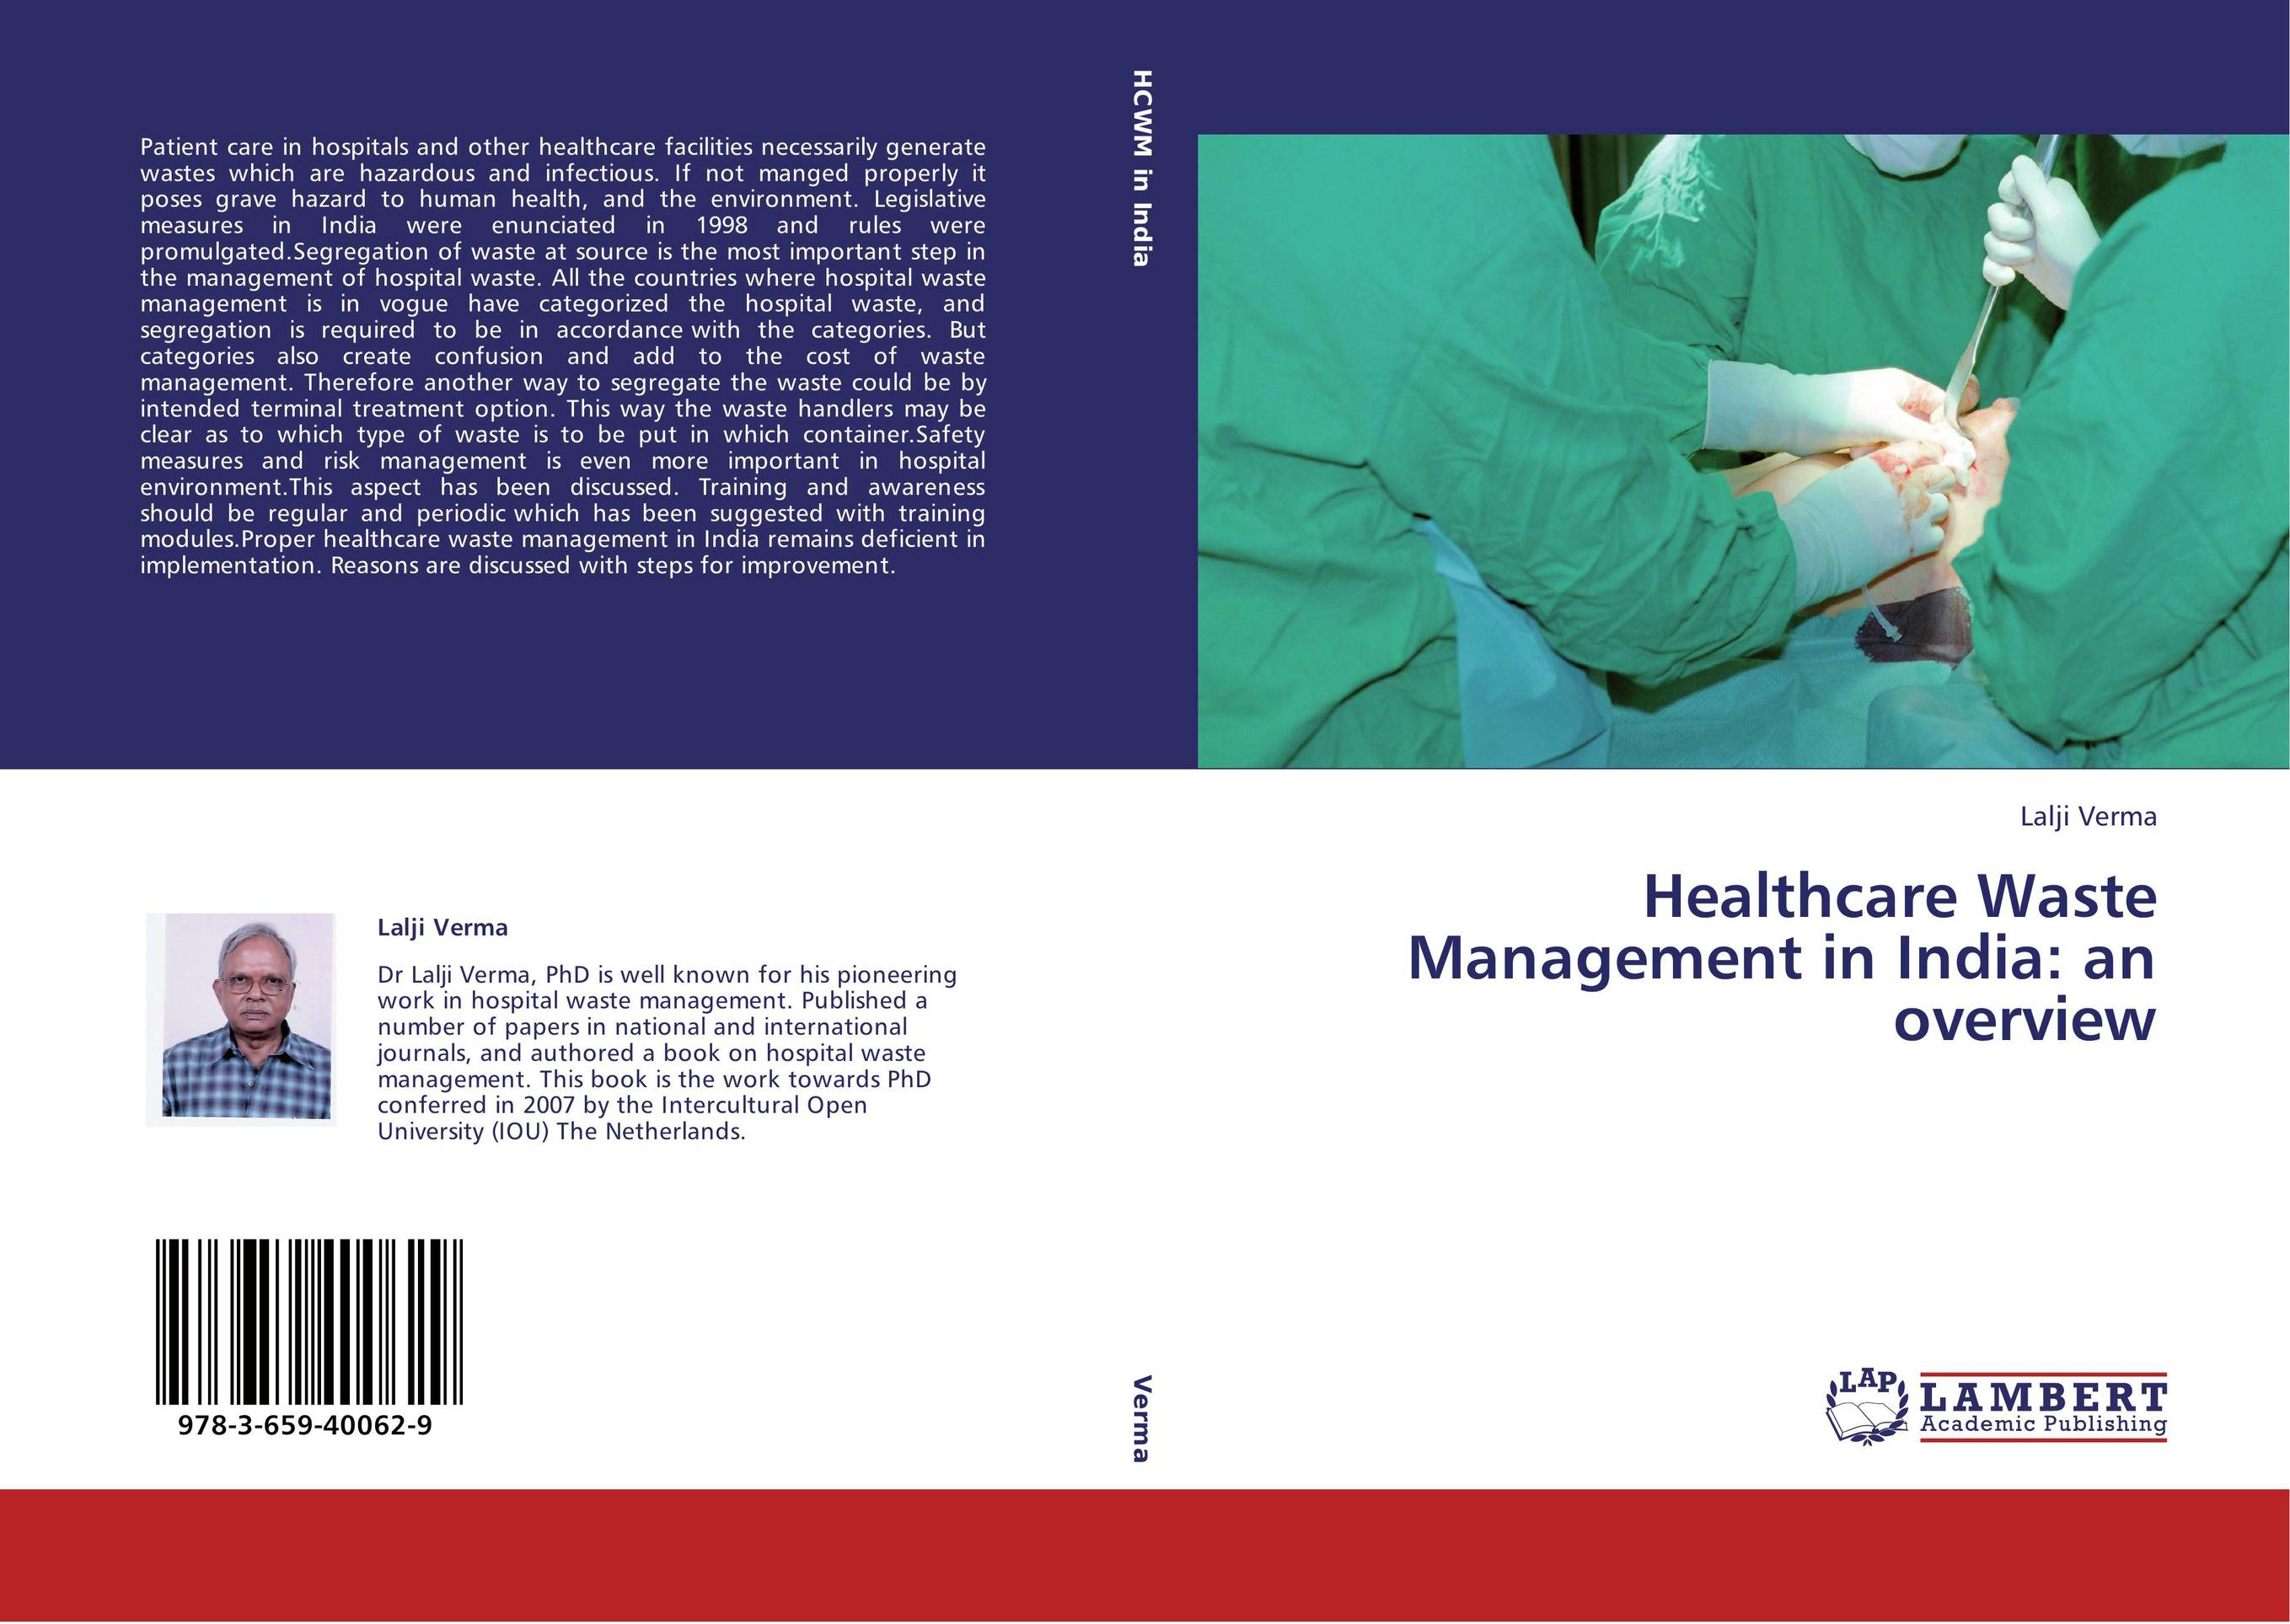 research papers on hospital waste management Waste management, houston, texas 157,606 likes 2,925 talking about this waste management is north america's leading provider of integrated hospital waste360's wasteexpo.